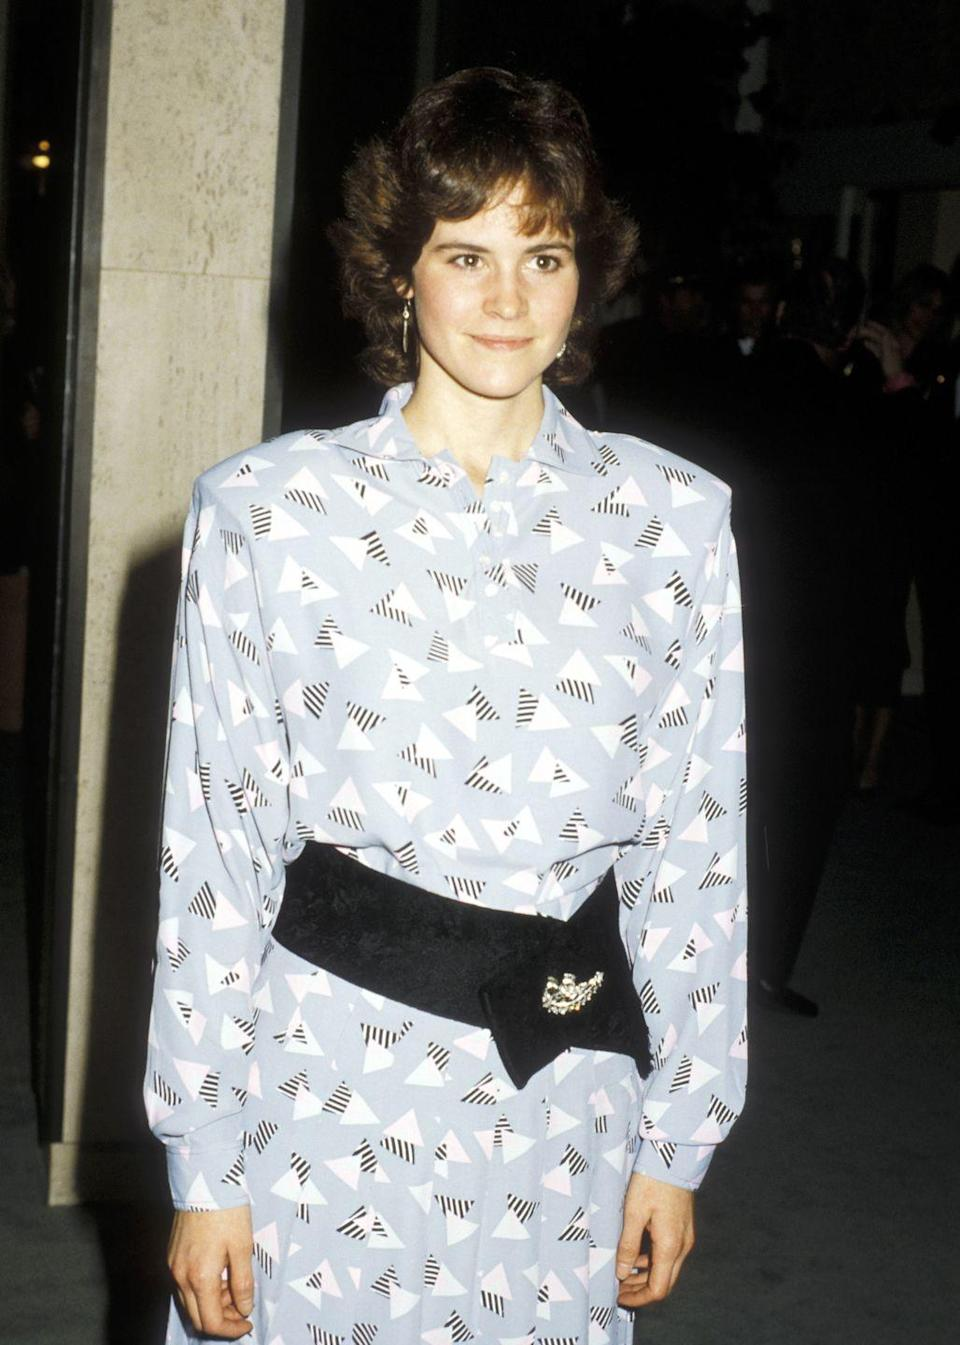 <p>Ally Sheedy made her big screen debut as Sean Penn's girlfriend in 1983's <em>Bad Boys. </em>As one of the stars of the Brat Pack, she rose to fame as the shy Allison Reynolds in <em>The Breakfast Club. </em>She spent the decade with other '80s hits like<em> WarGames </em>and <em>St. Elmo's Fire.</em><br></p>